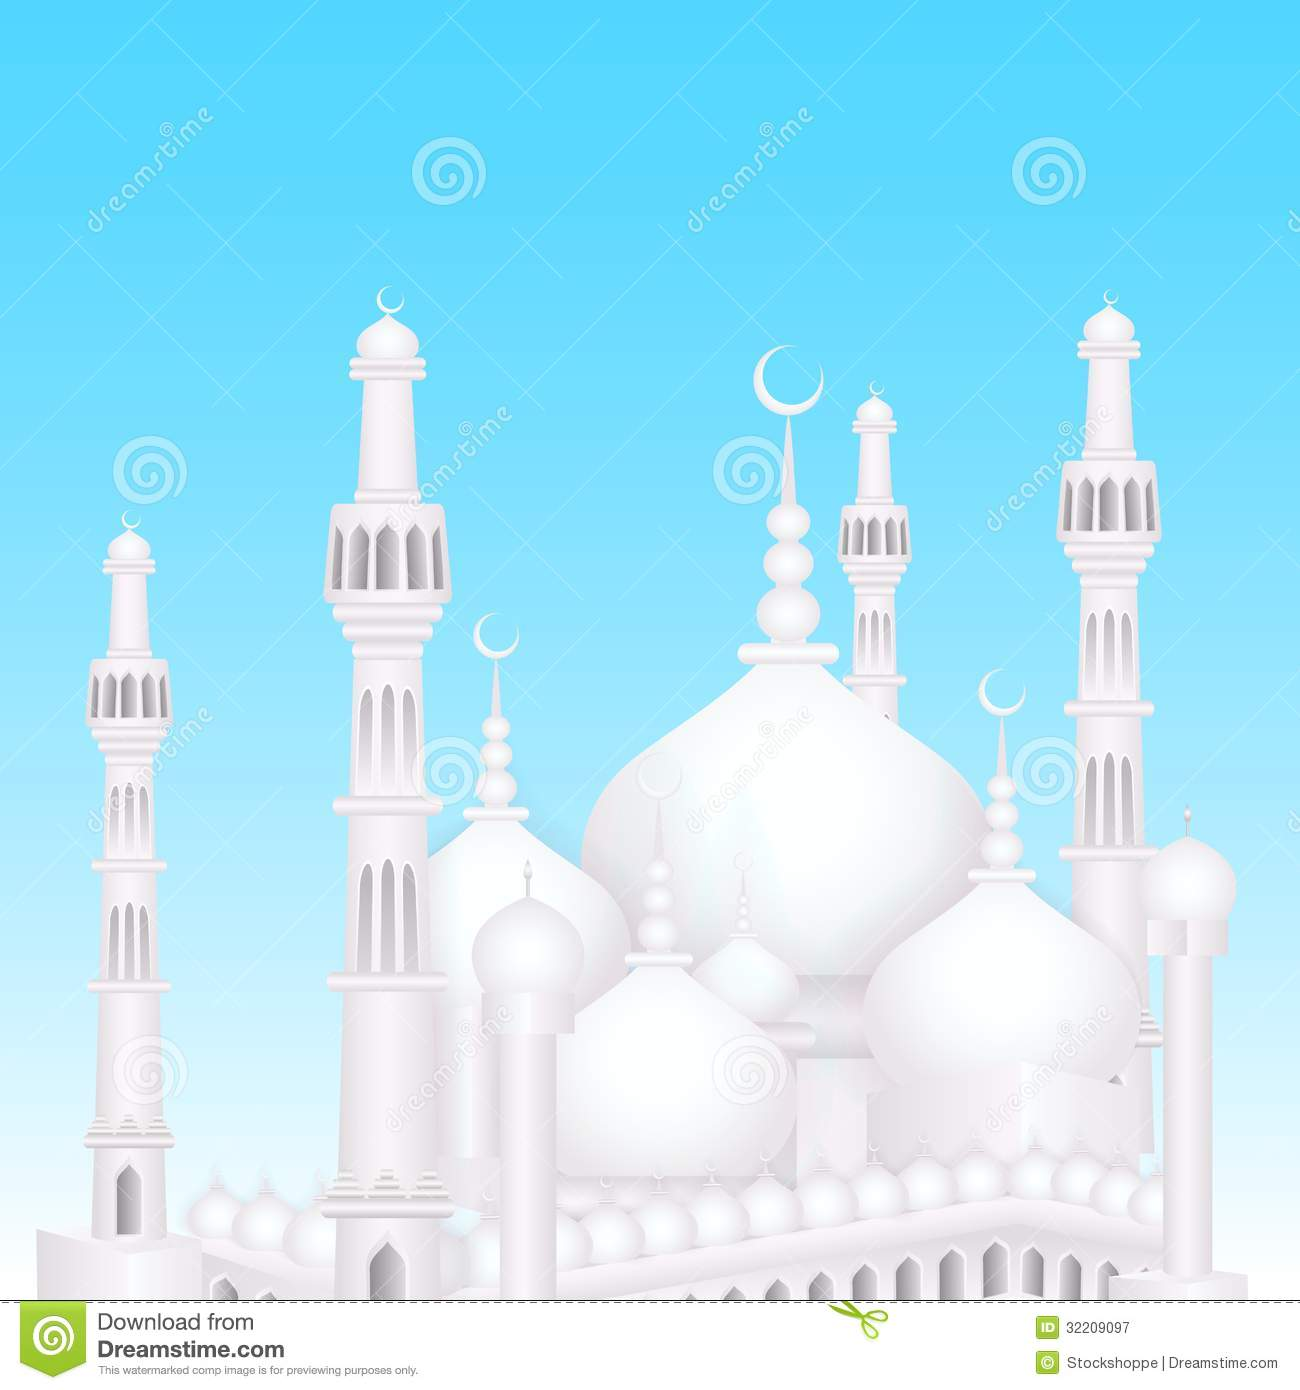 Wallpaper download eid mubarak - Eid Mubarak Background With Islamic Mosque Royalty Free